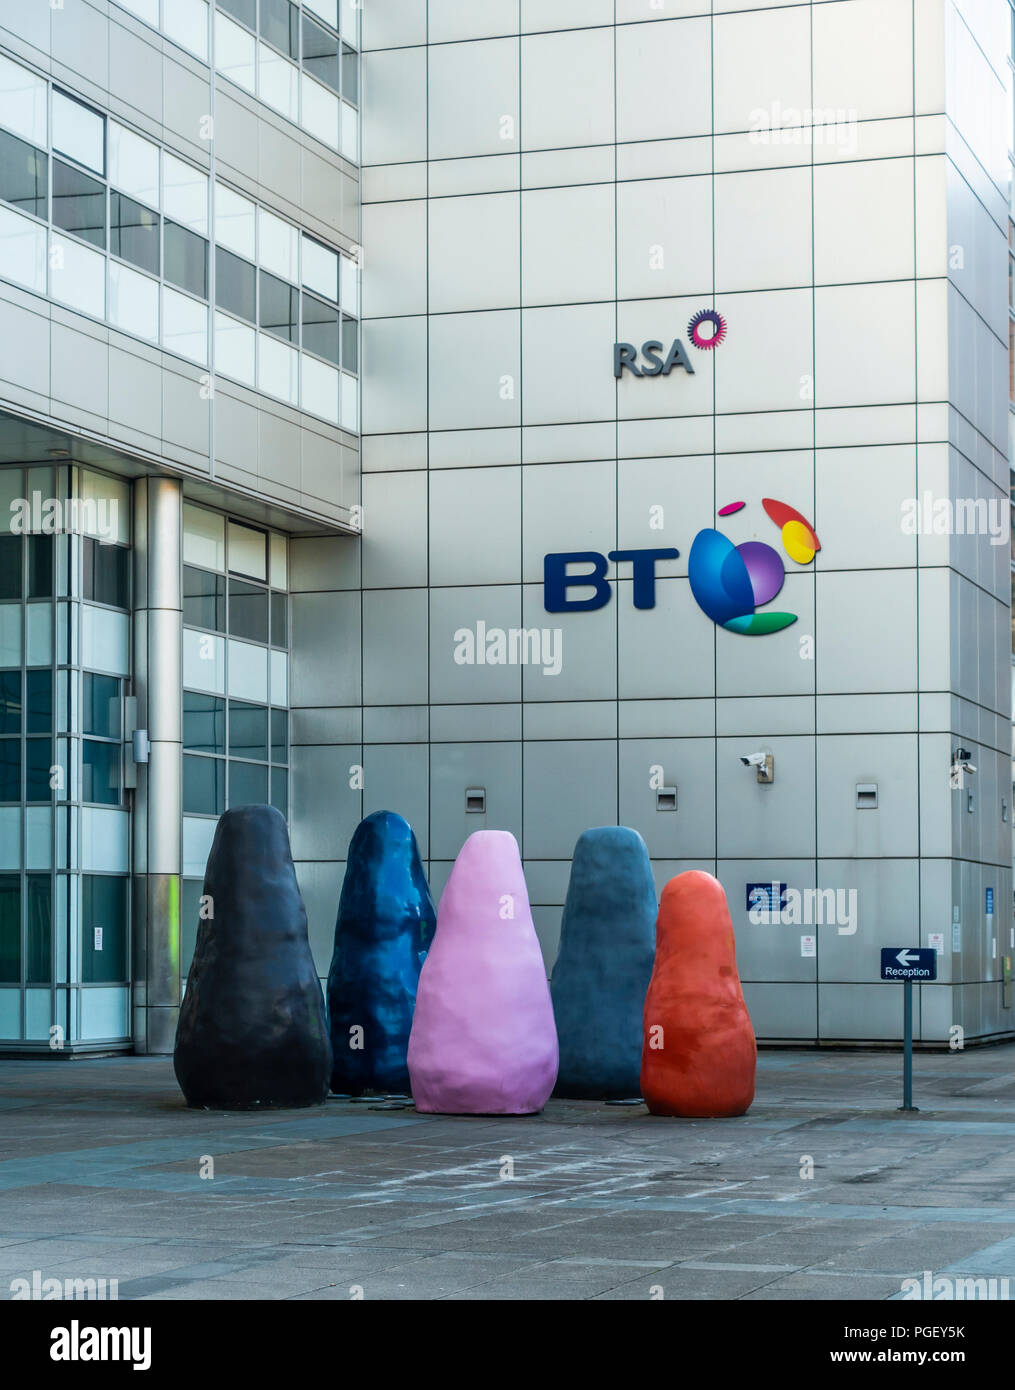 Entrance to the BT building in Atlantic Quay, Glasgow, featureing a modern sculpture. Stock Photo